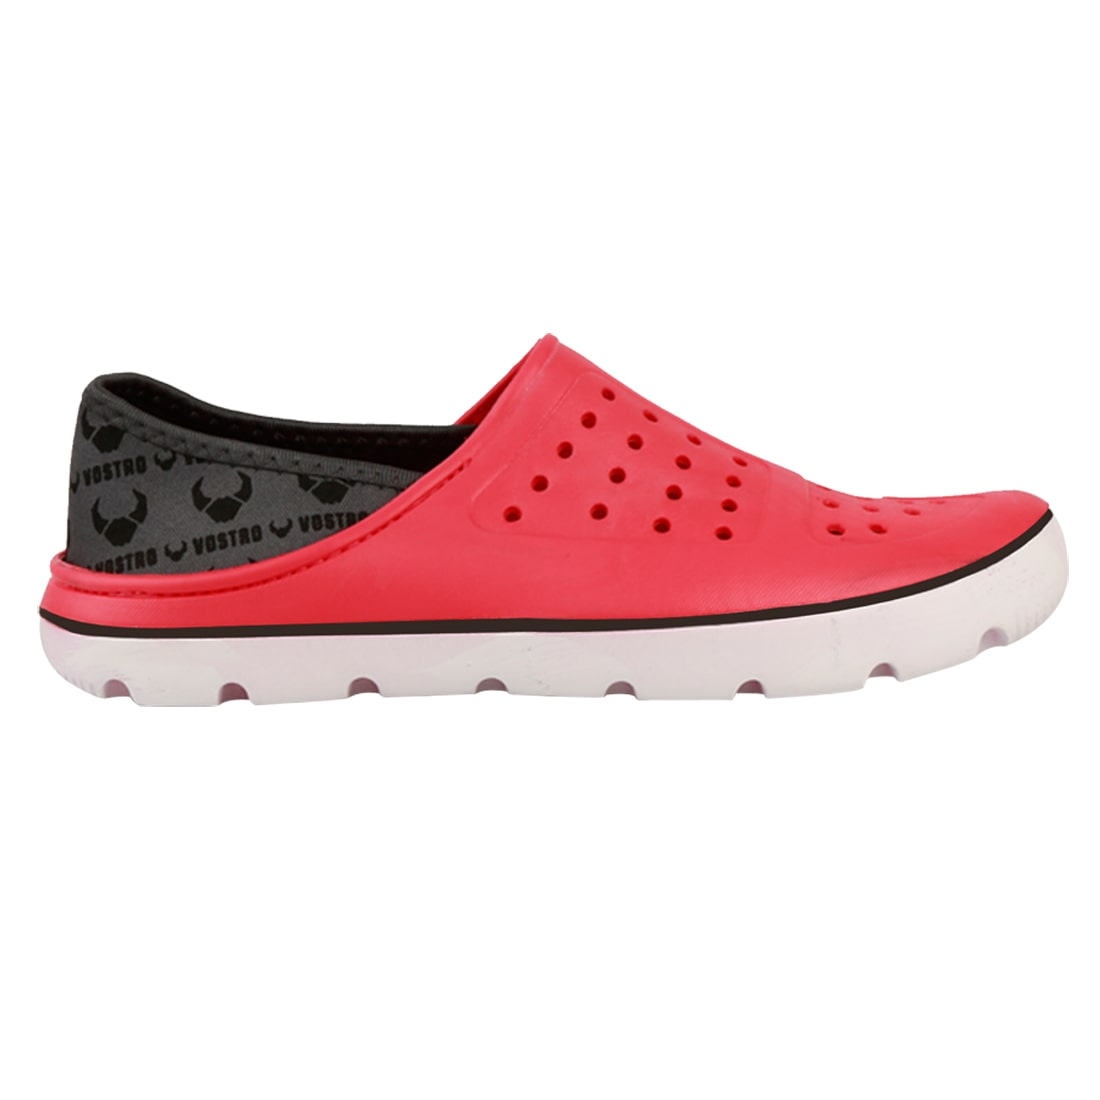 b47dabdca0 Buy Vostro Men Red Sneakers Online at Low Prices in India - Paytmmall.com